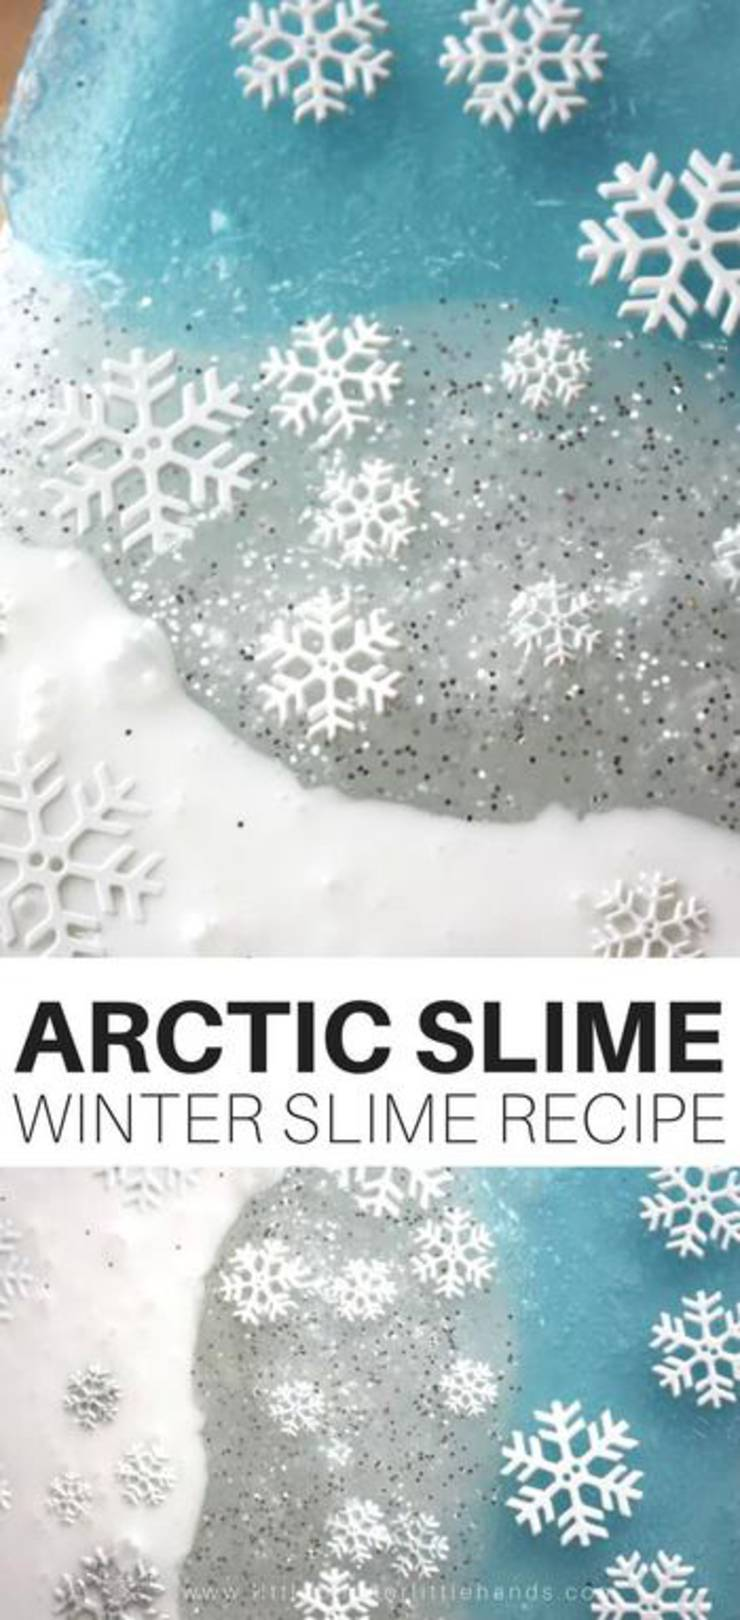 Arctic Slime - Christmas Slime! How To Make DIY Christmas Slime - Easy Homemade Recipes